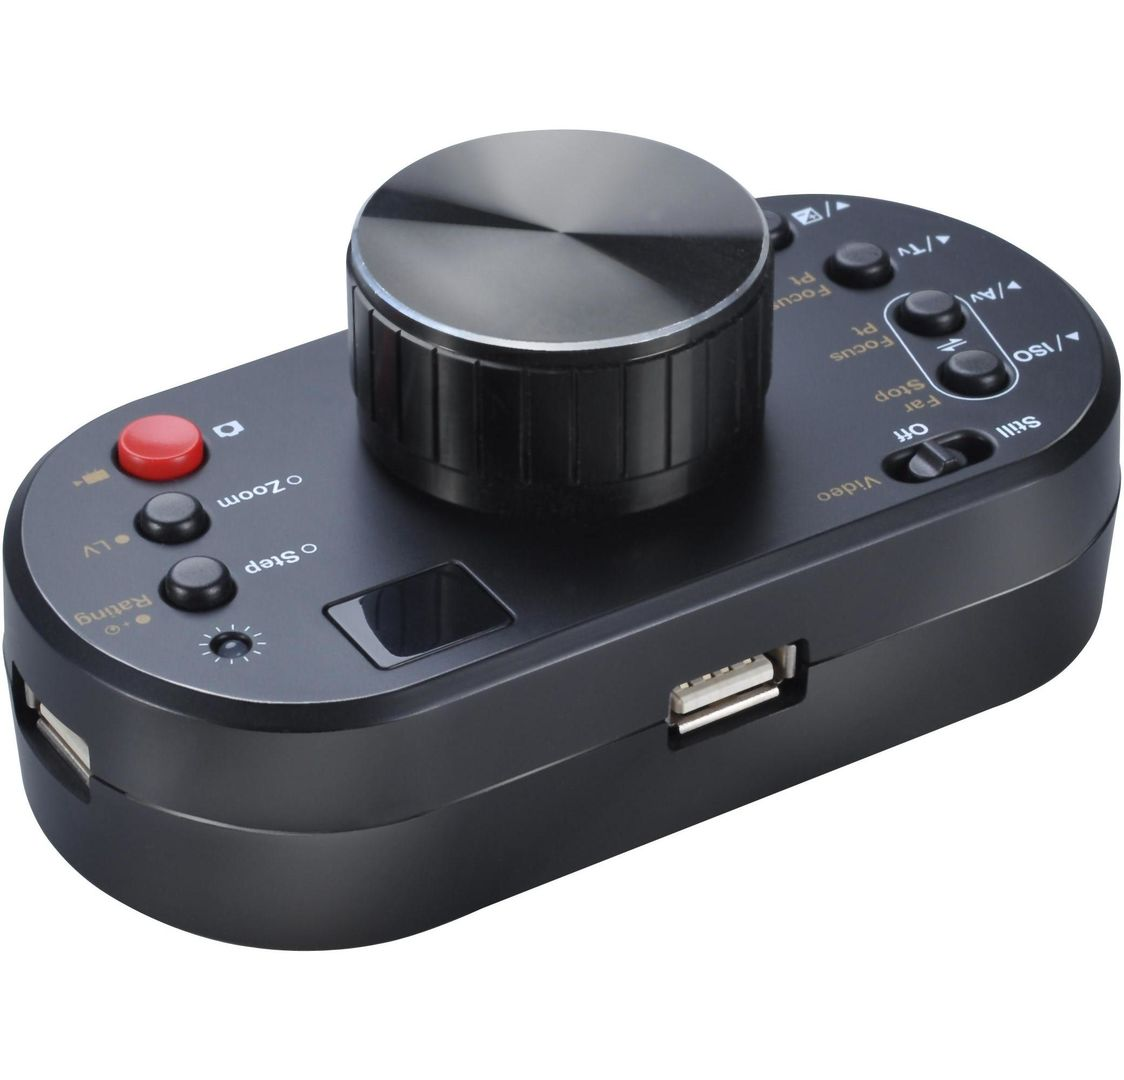 Buy Aputure Usb Focus Controller -ufc1s in Dubai at cheap price